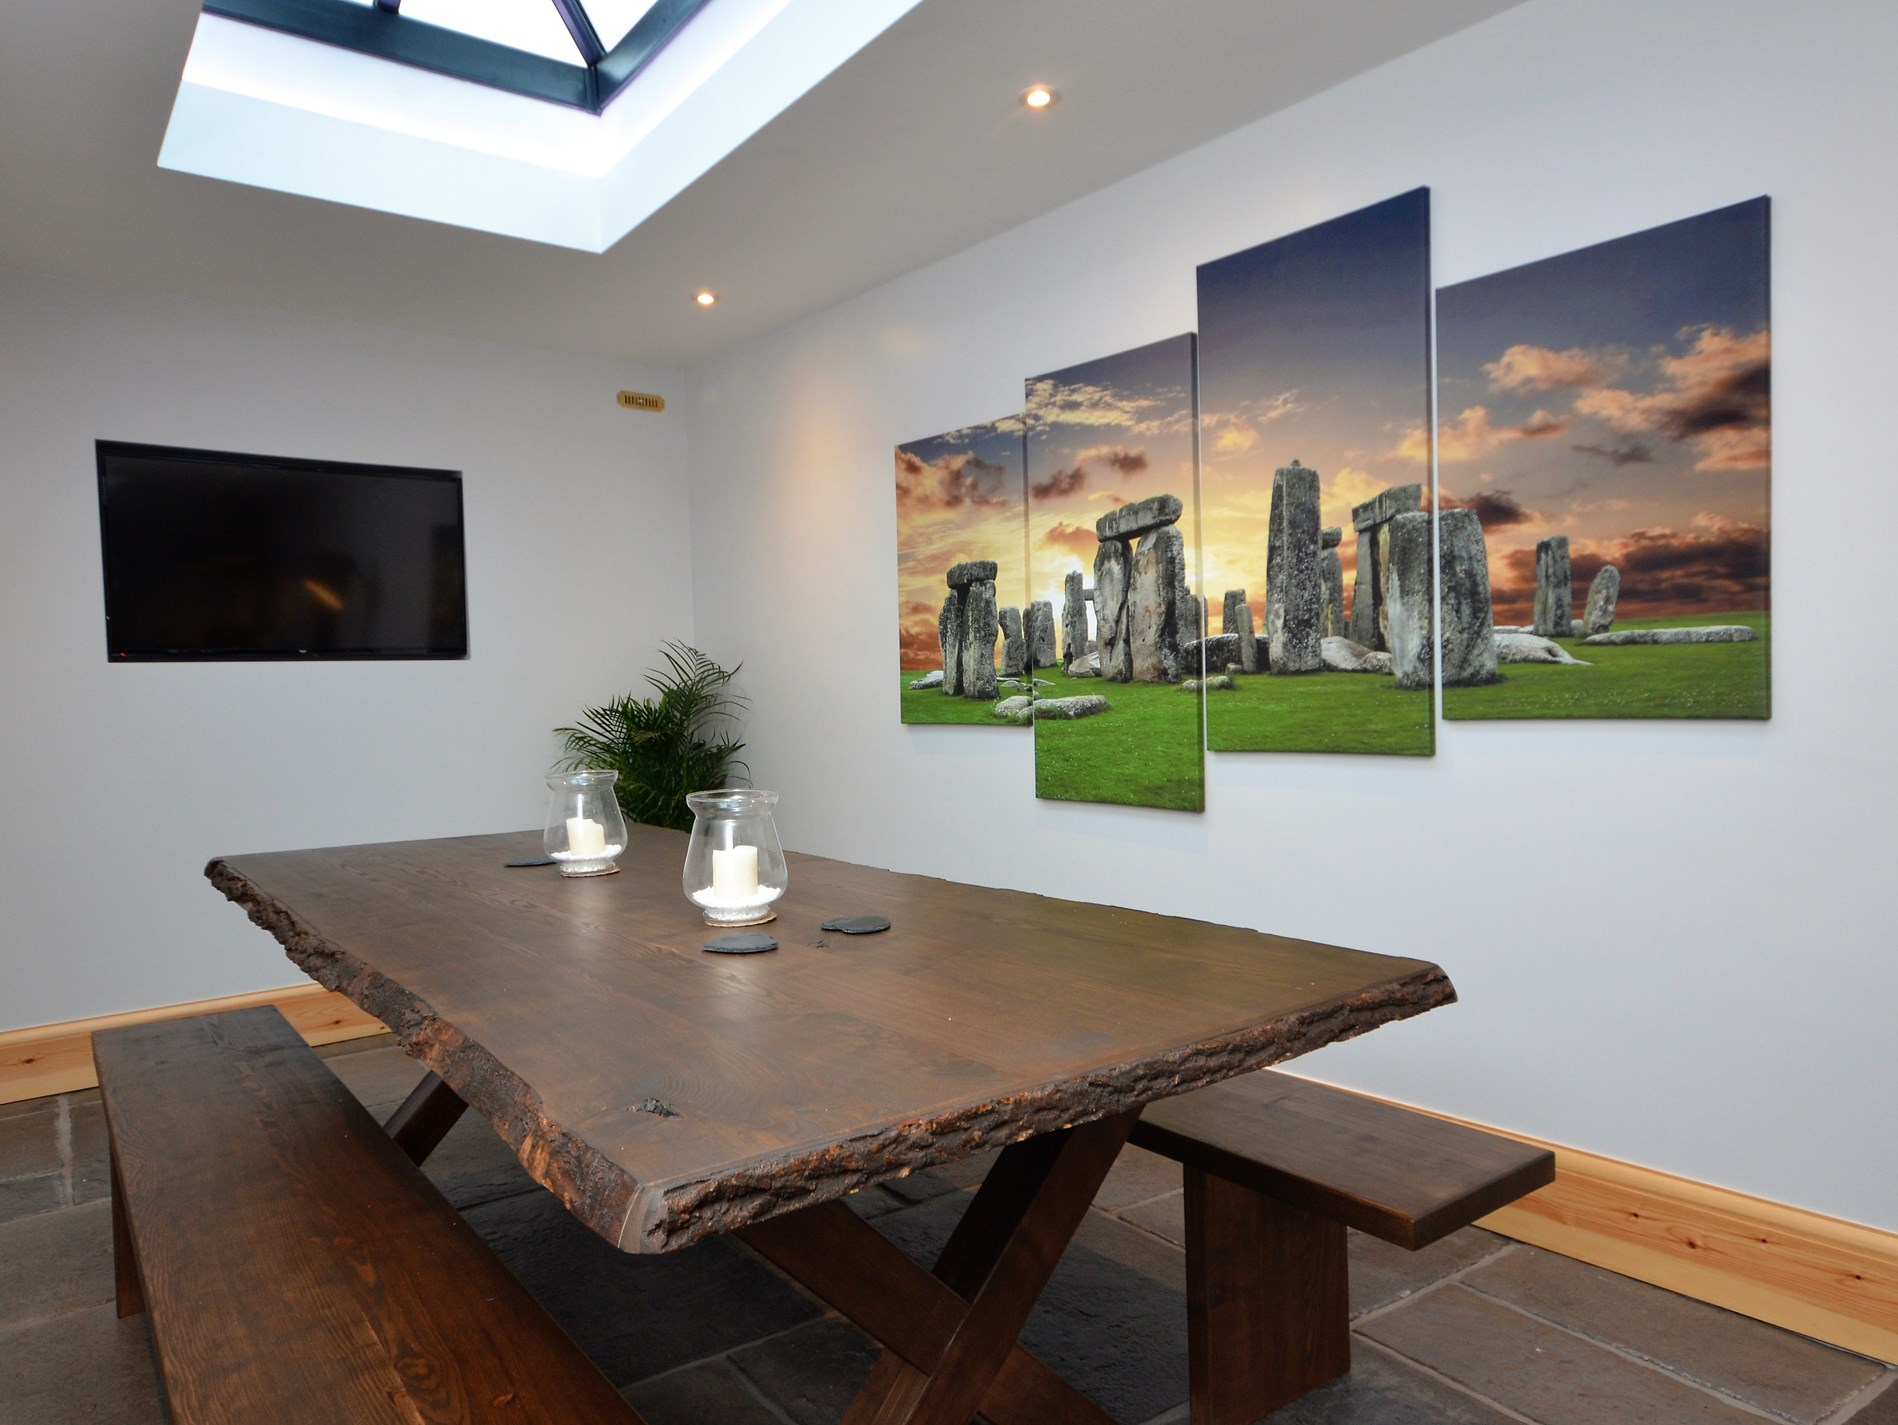 Dining area with large flatscreen TV